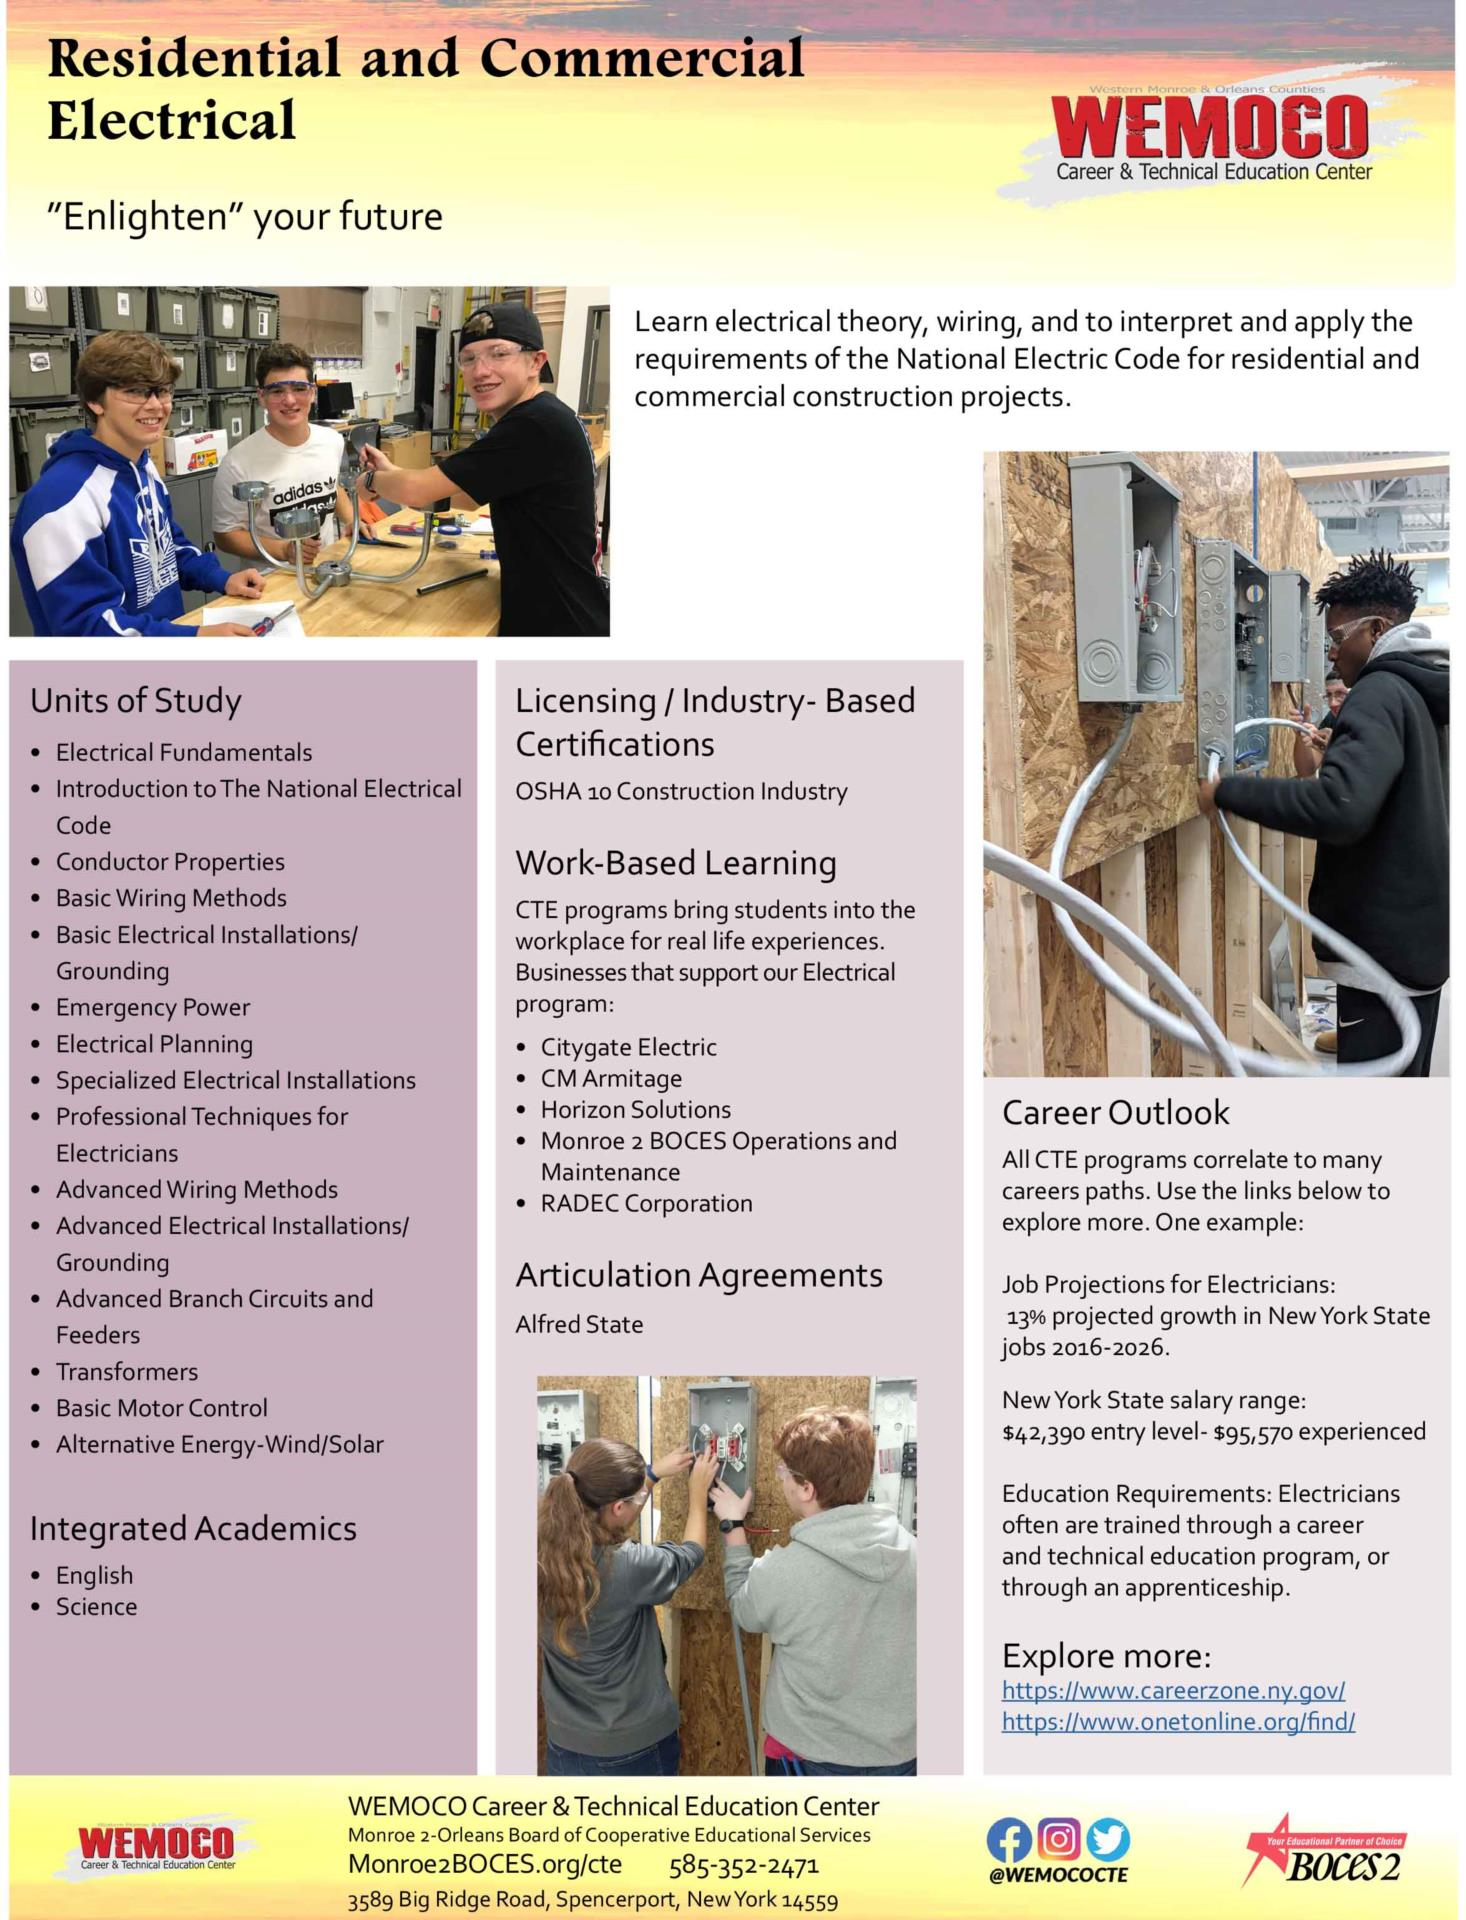 Download a PDF overview of the Residential and Commercial Electrical program information